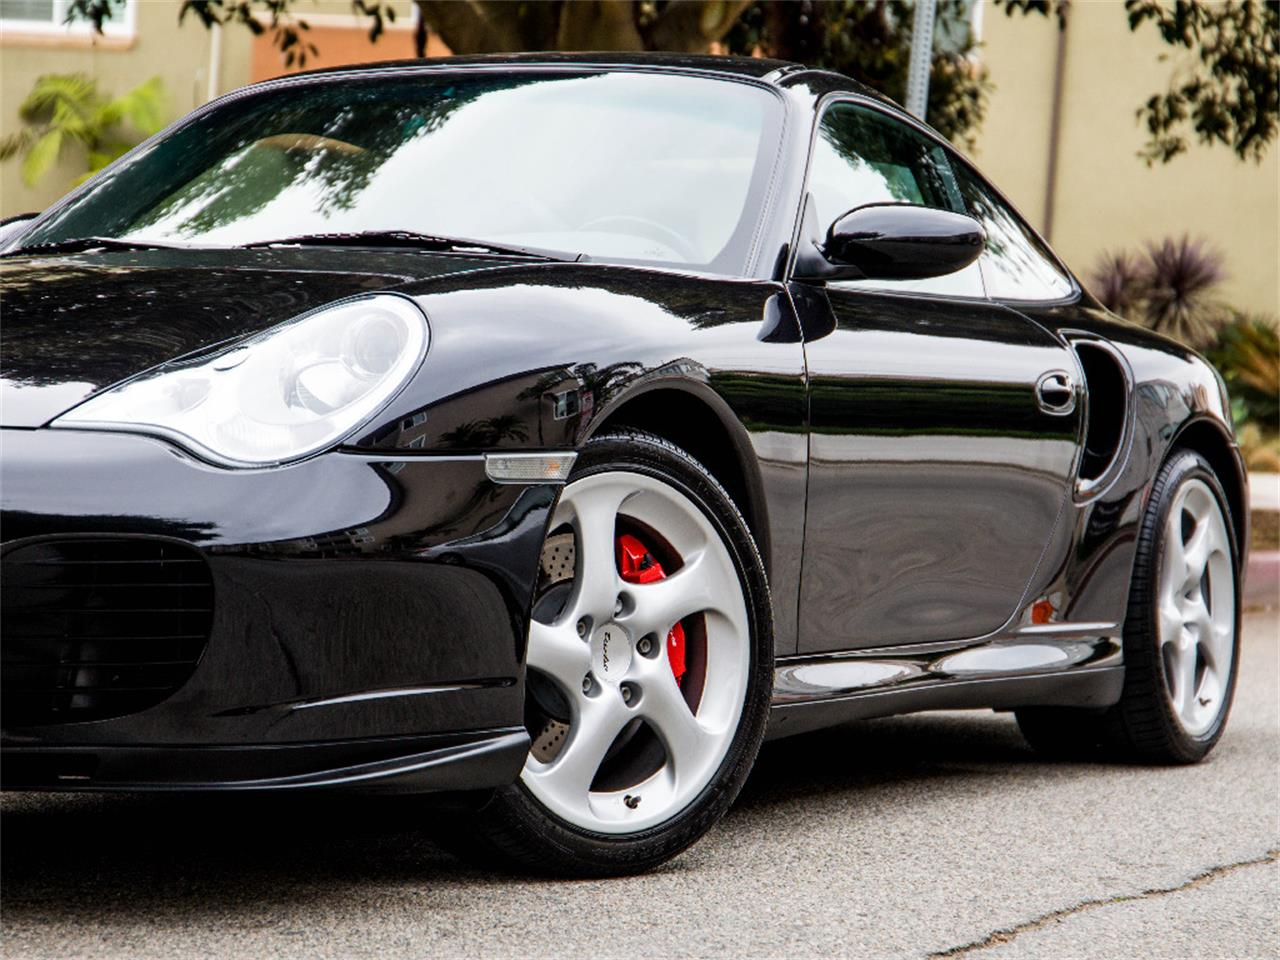 Large Picture of 2002 911 Turbo located in California - $74,500.00 - NVVR